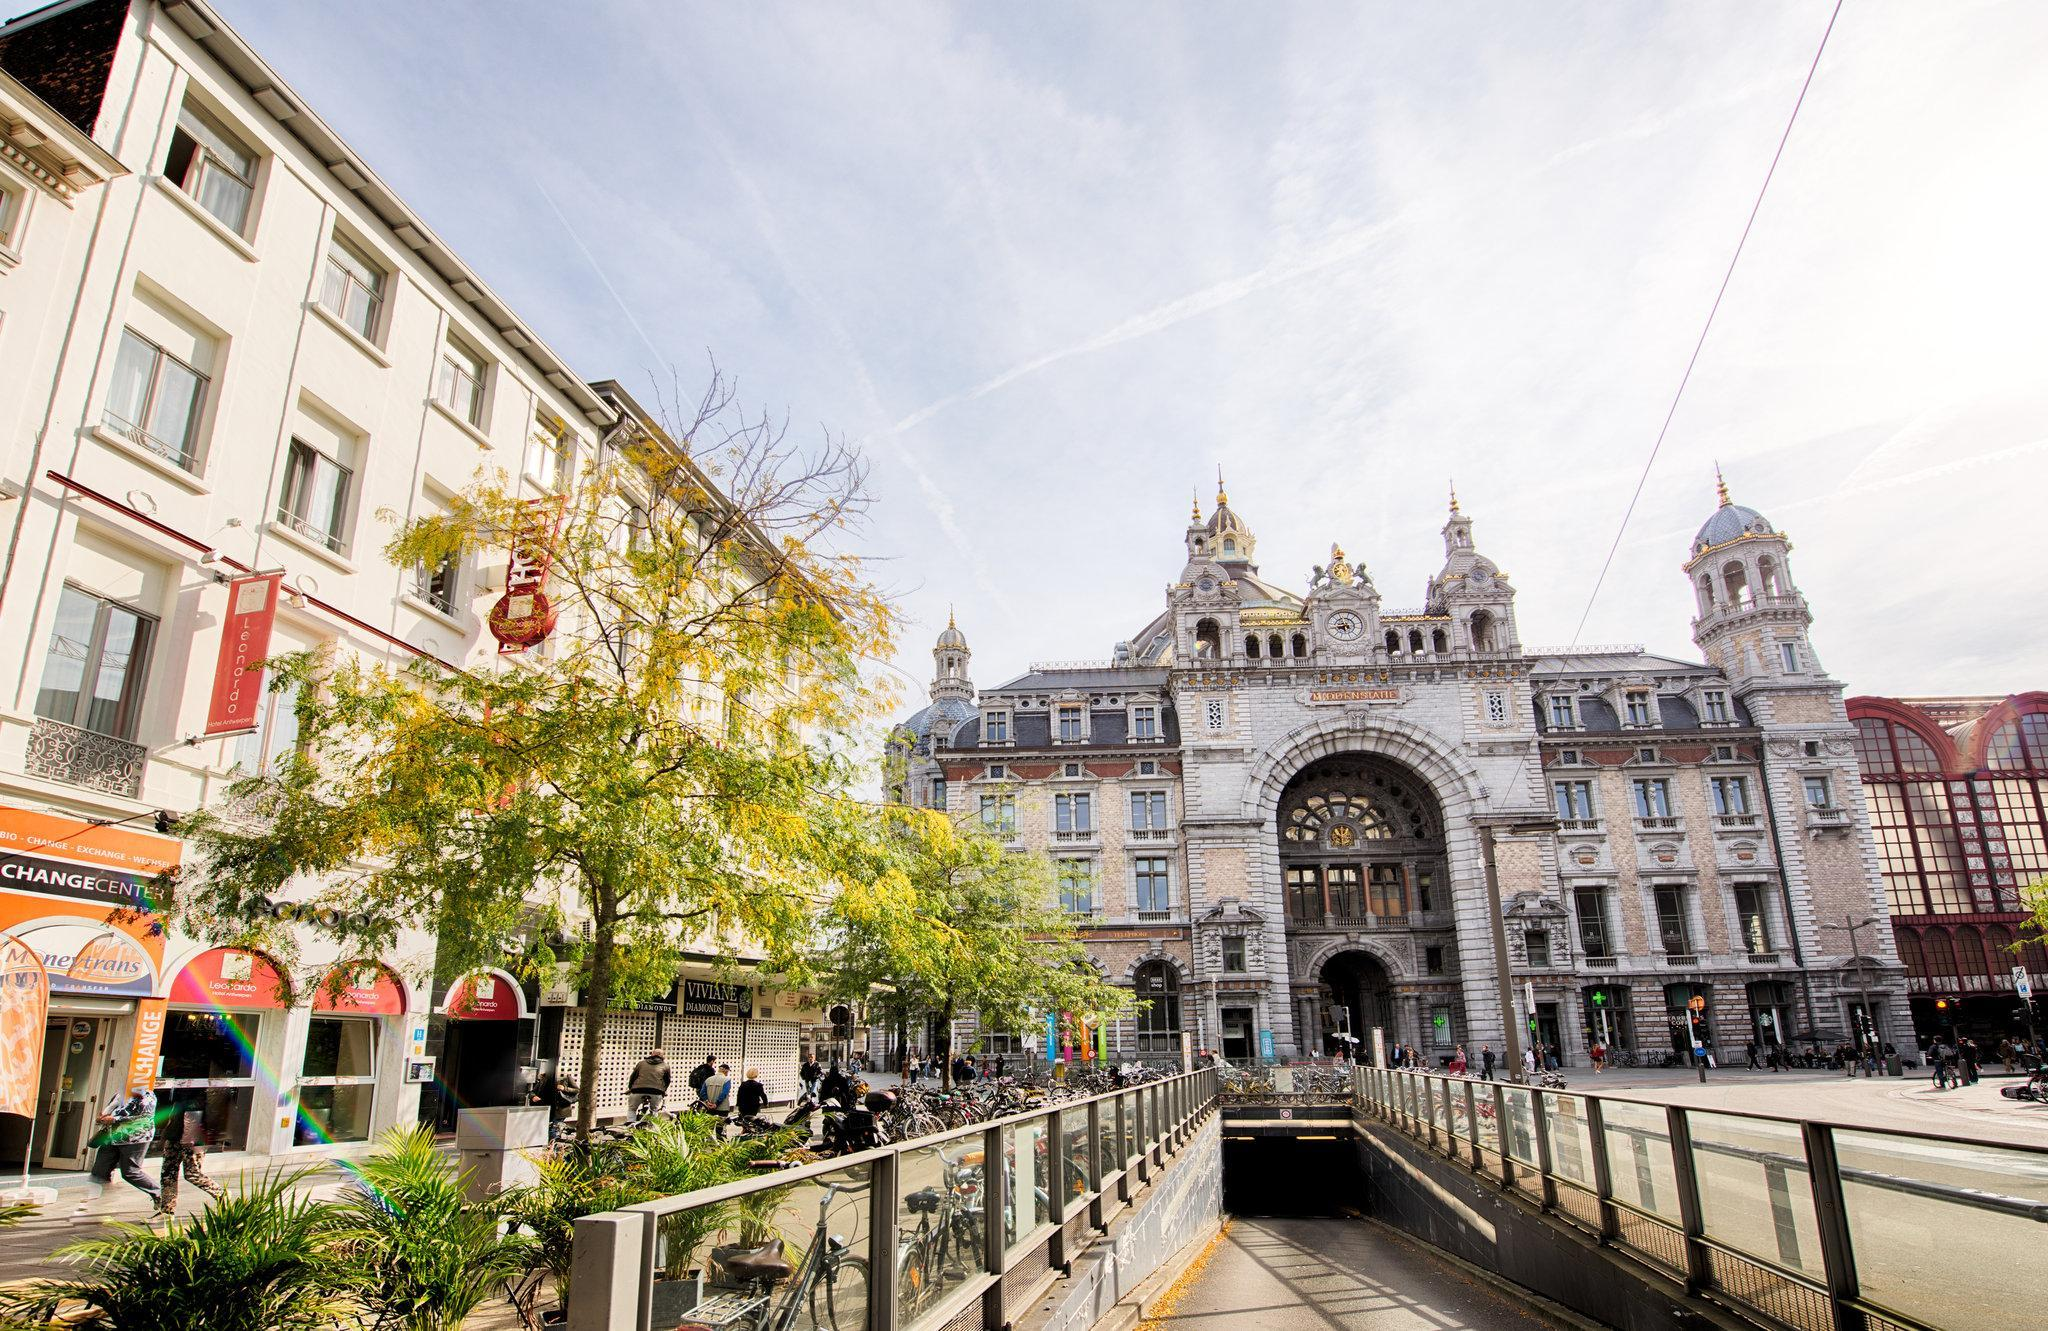 Best Hotels in Antwerp, Belgium: Cheap & Luxury Accommodations